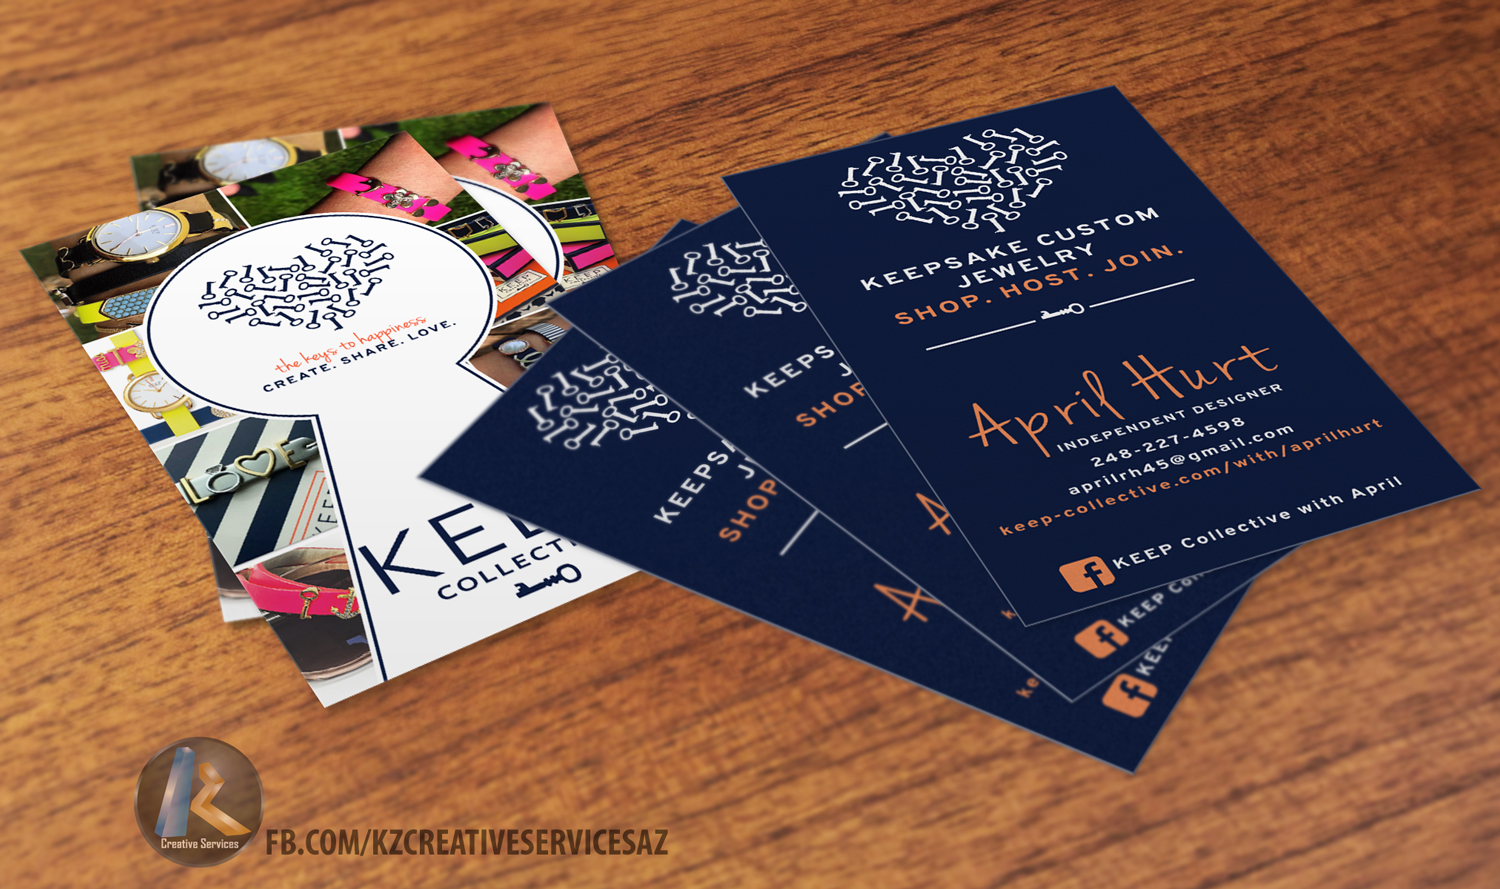 keep collective business cards style 1 kz creative services